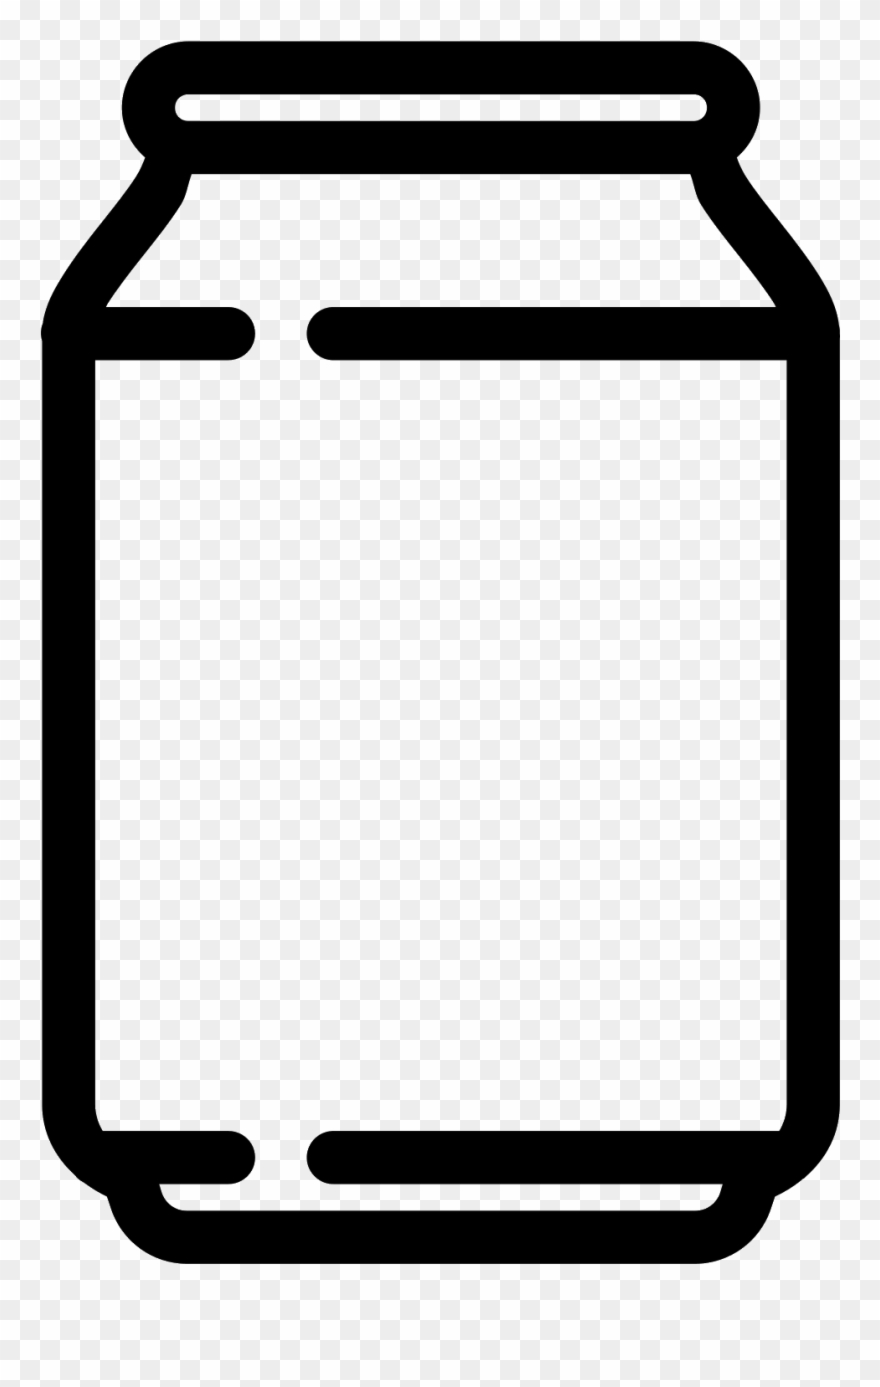 Beer can clipart case.